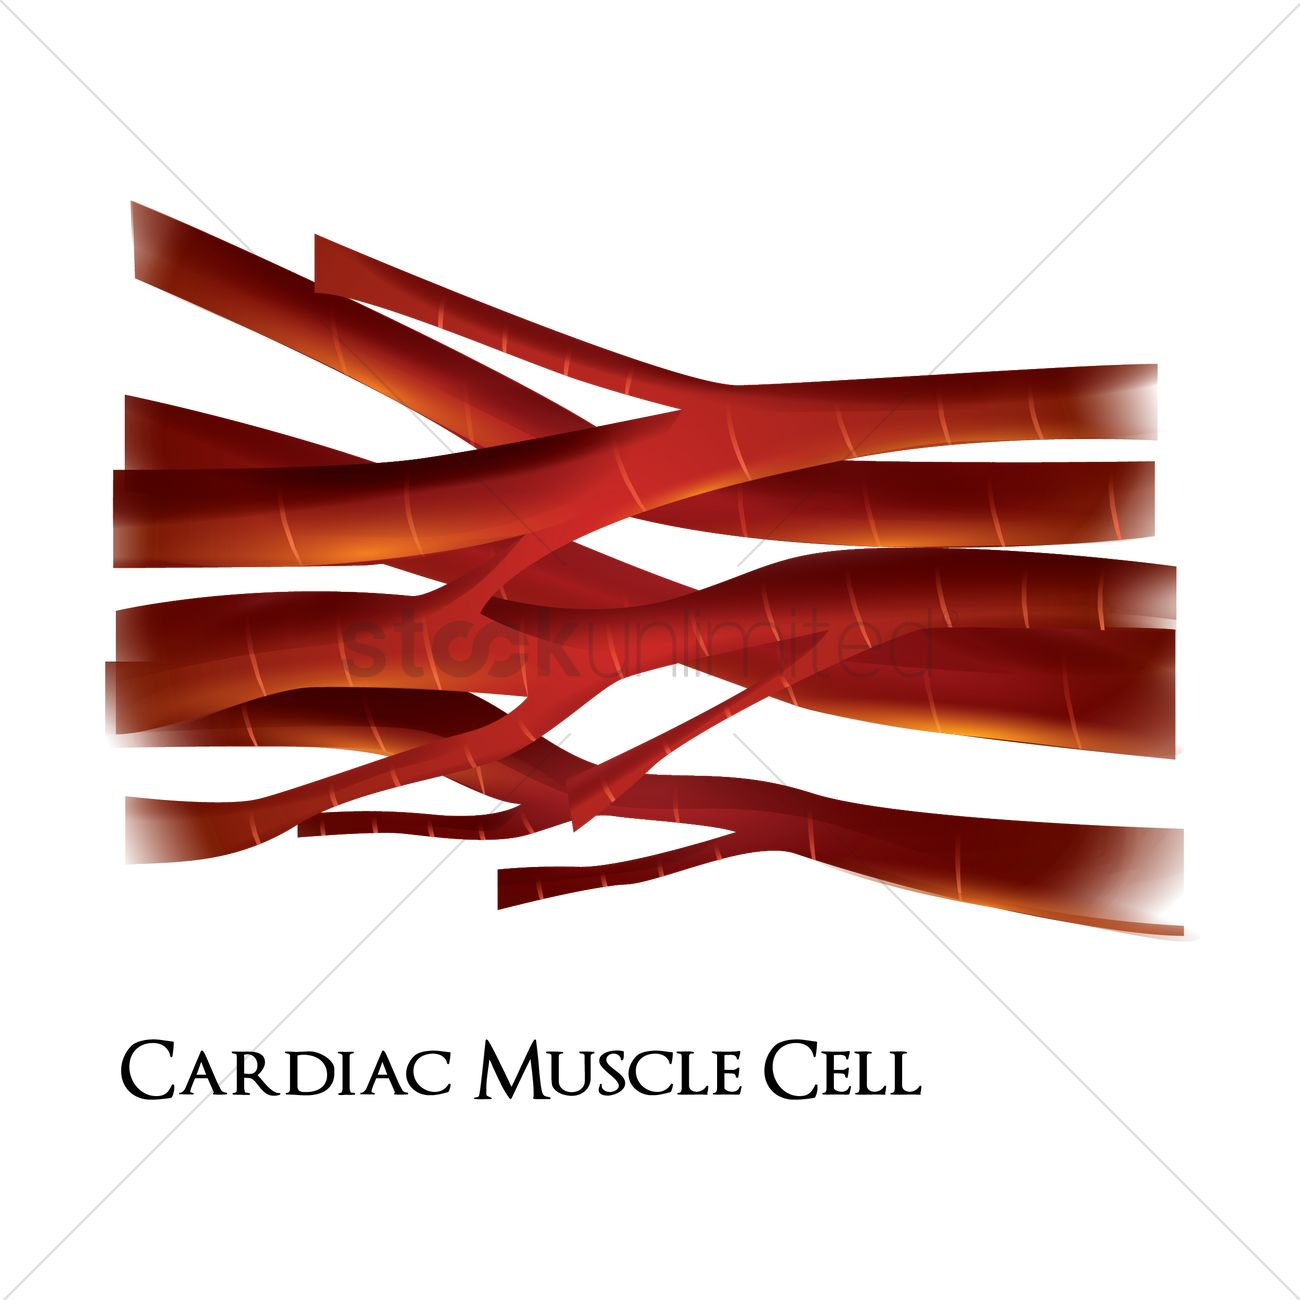 Cardiac muscle cell Vector Image - 1807888 | StockUnlimited